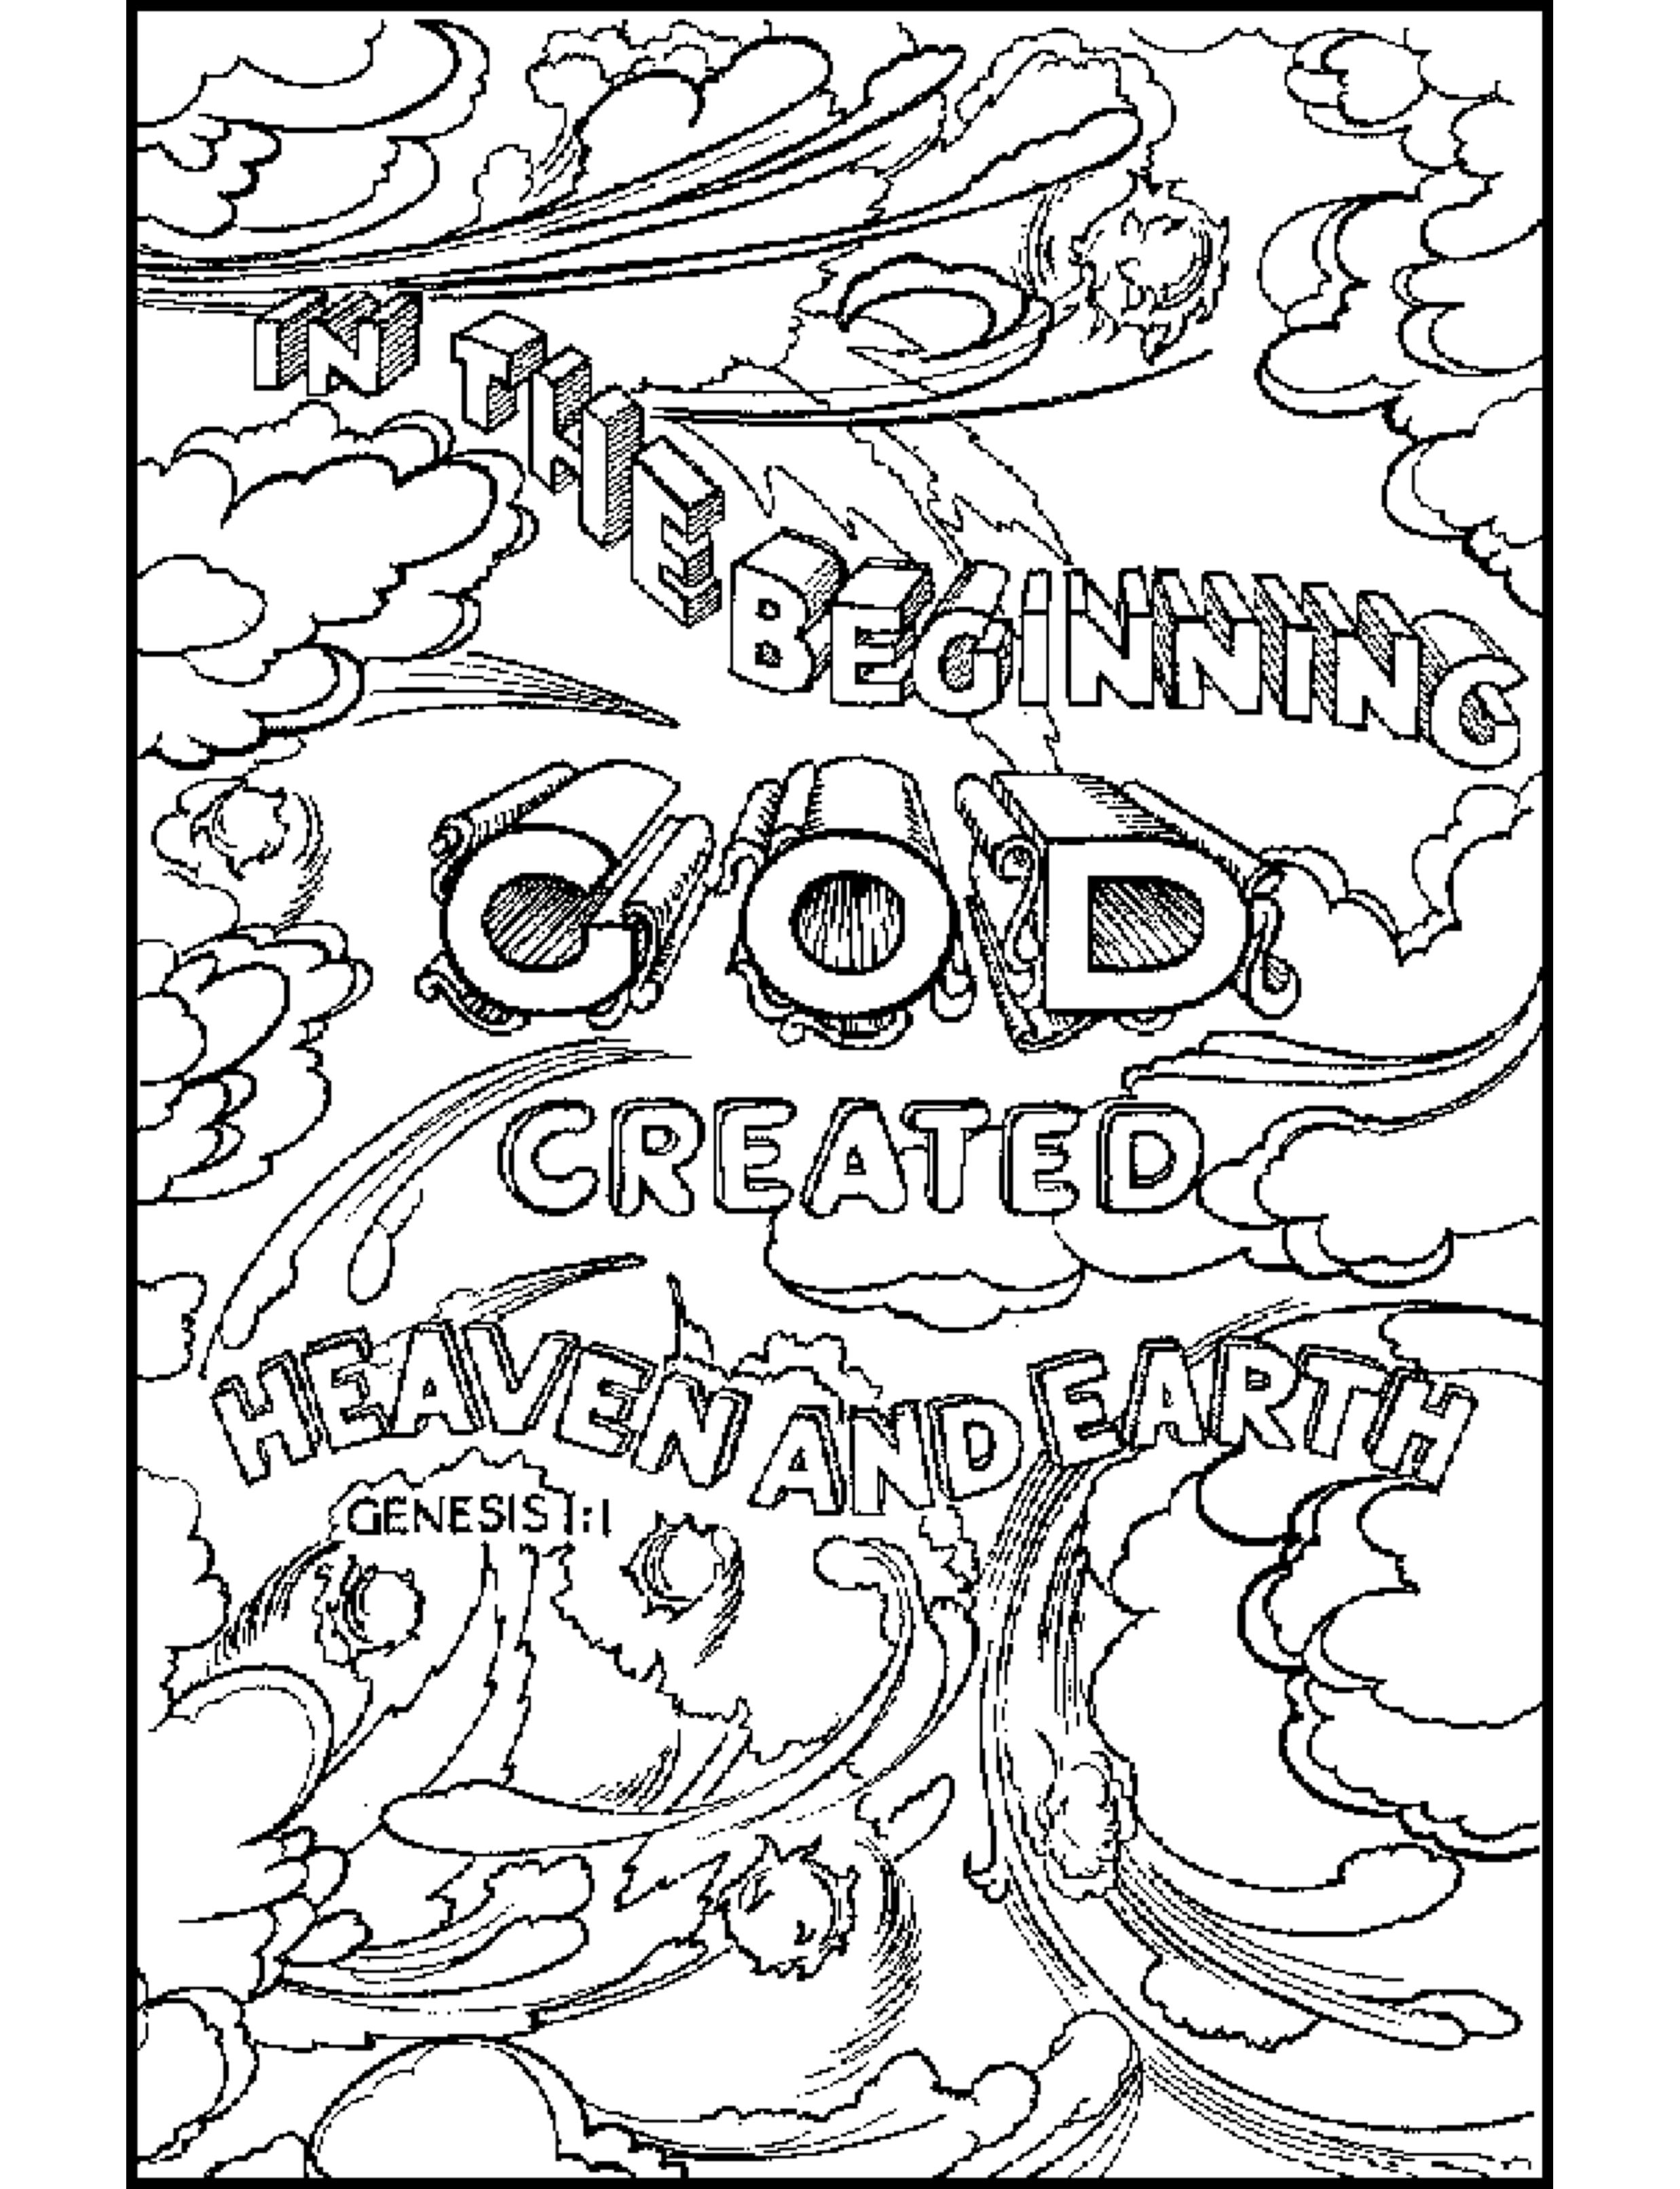 coloring bible verses for kids pin by john fecanin on sunday school lessons bible verse coloring verses kids for bible